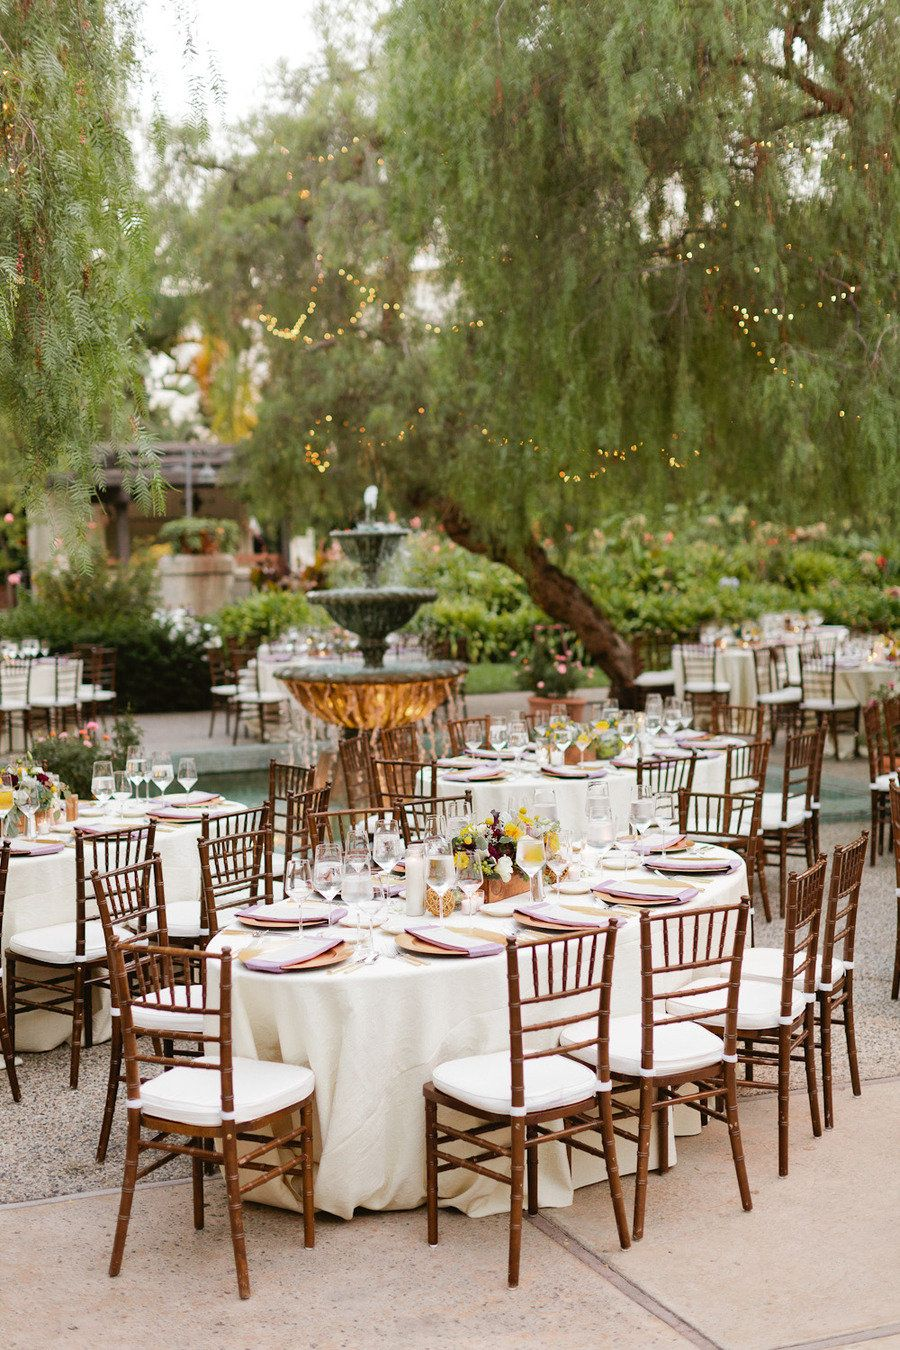 Los Angeles River Center And Gardens Wedding Photos